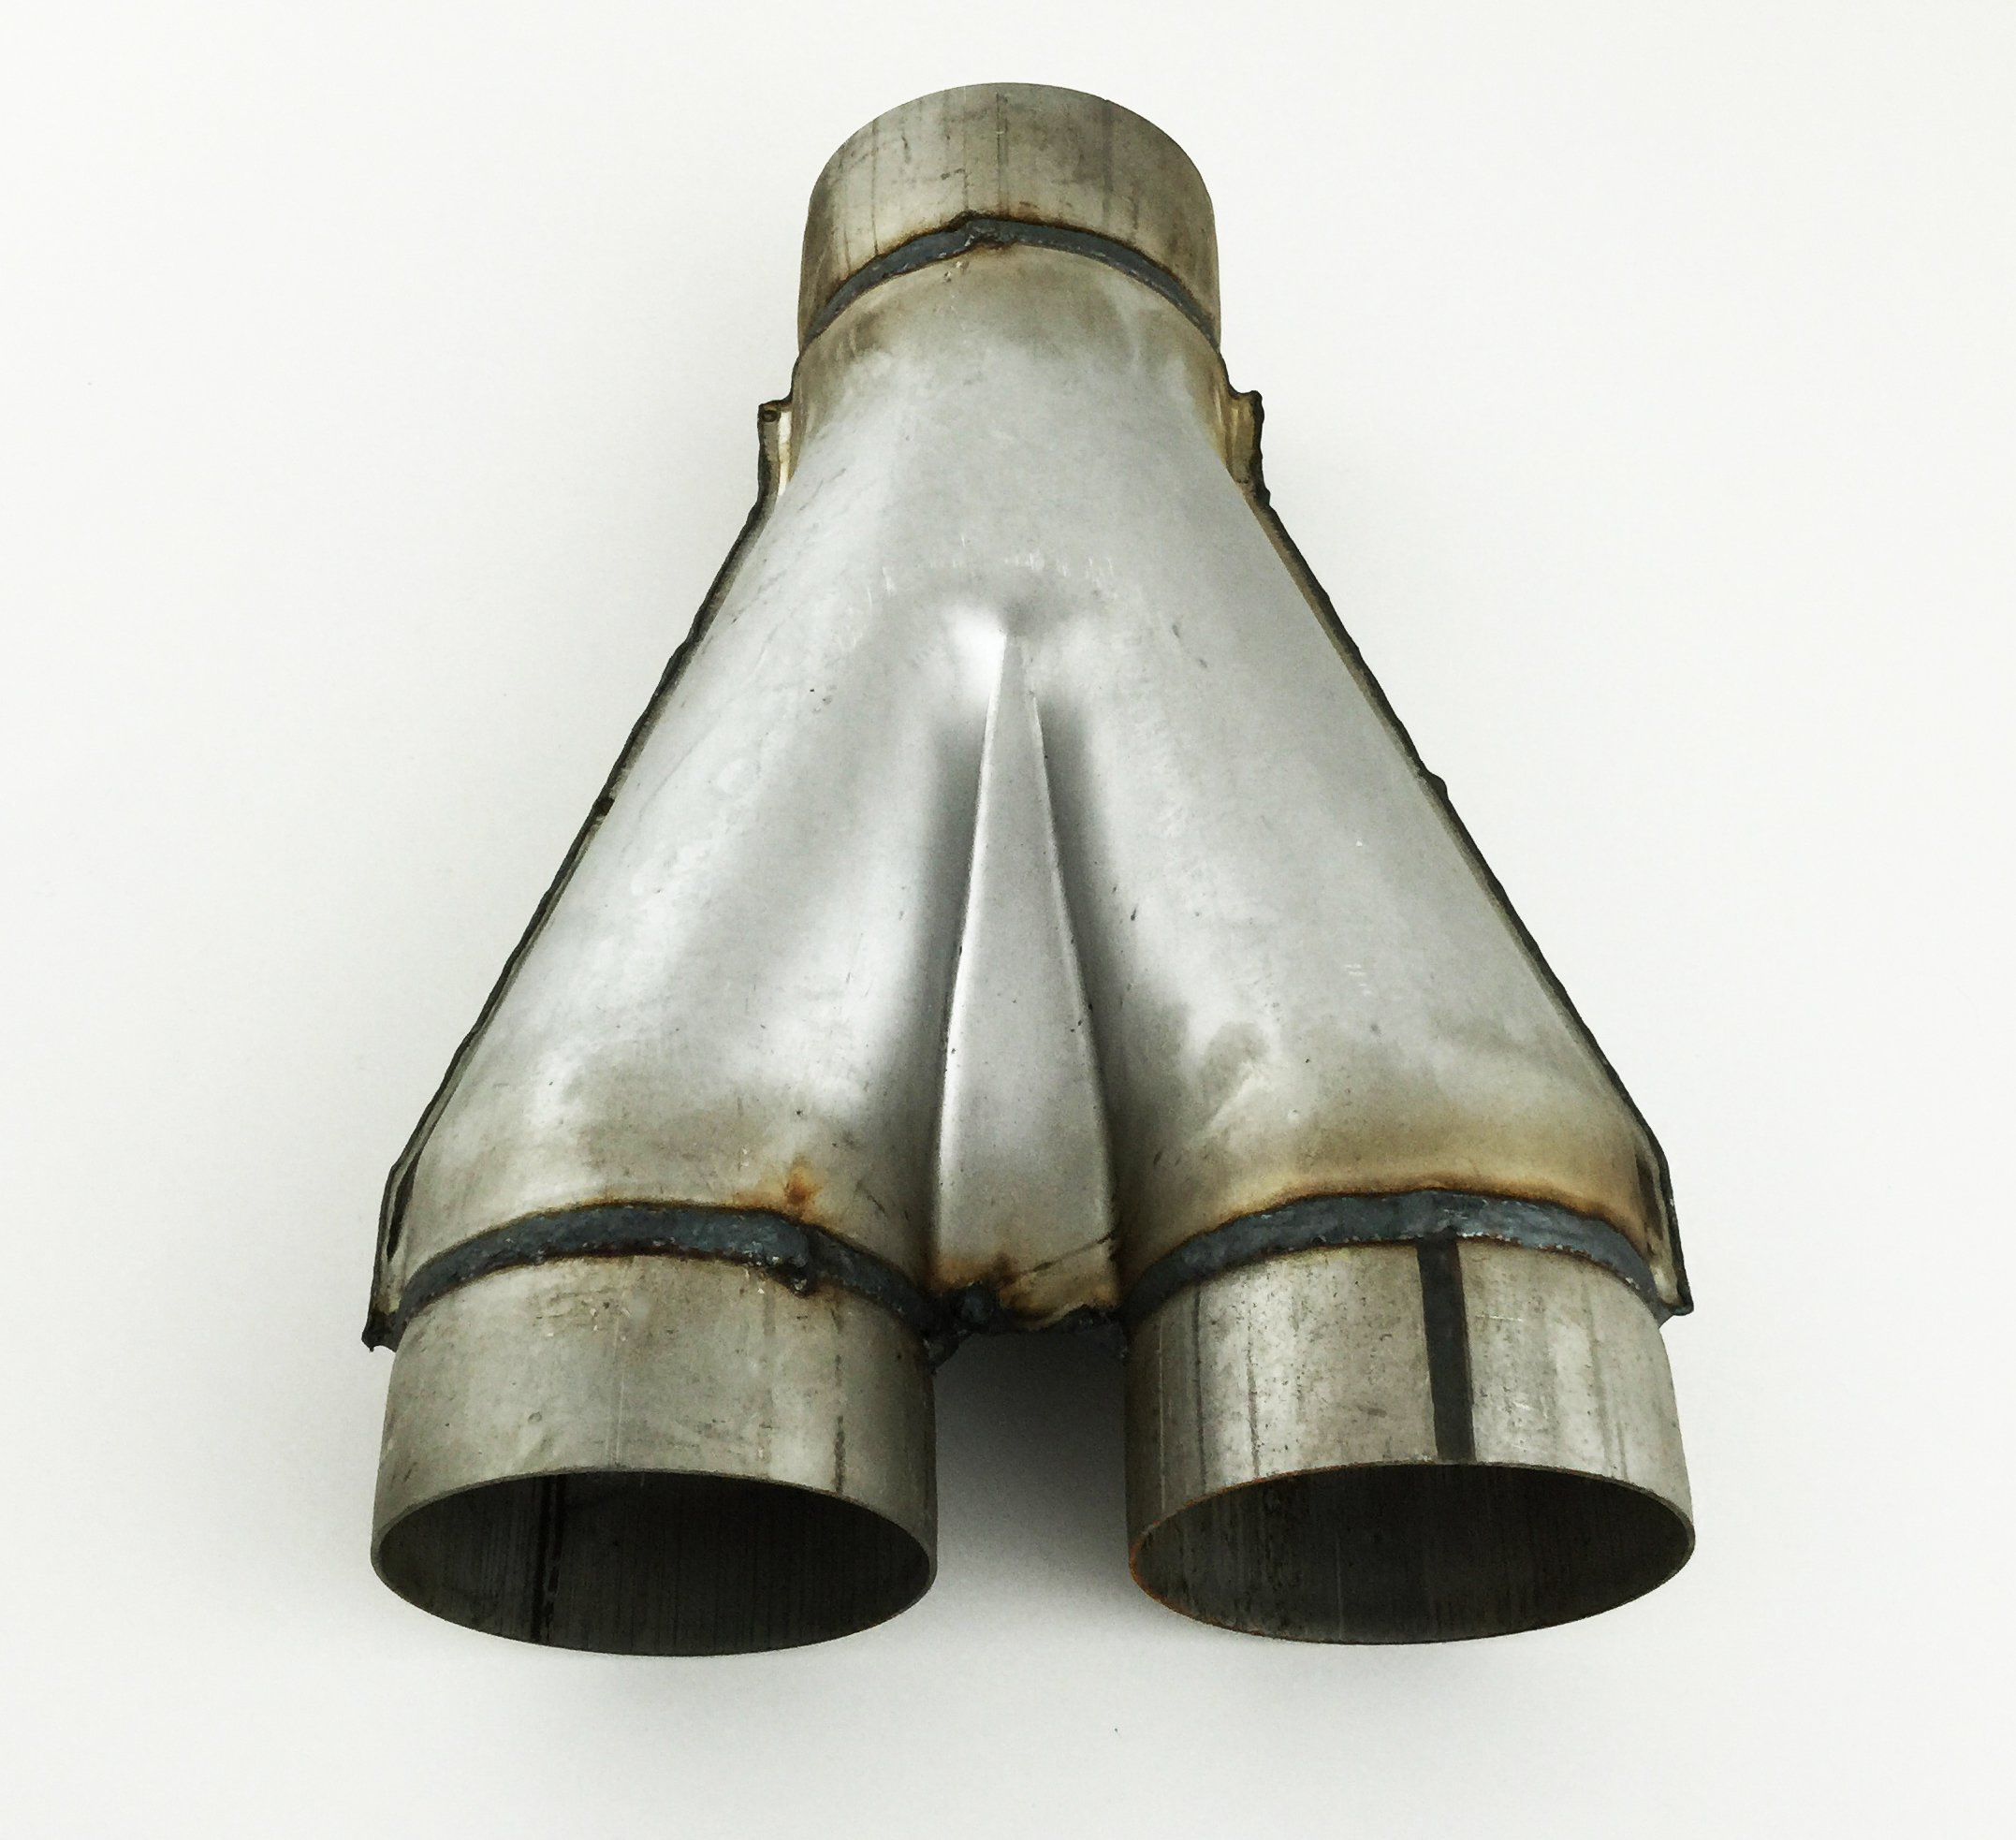 Diesel Exhaust Stamped Y Pipe 4.00'' Diameter Single Inlet to 4.00'' Diameter Dual Outlets WSYP400-400 Wesdon Exhaust Stamped Y Pipe